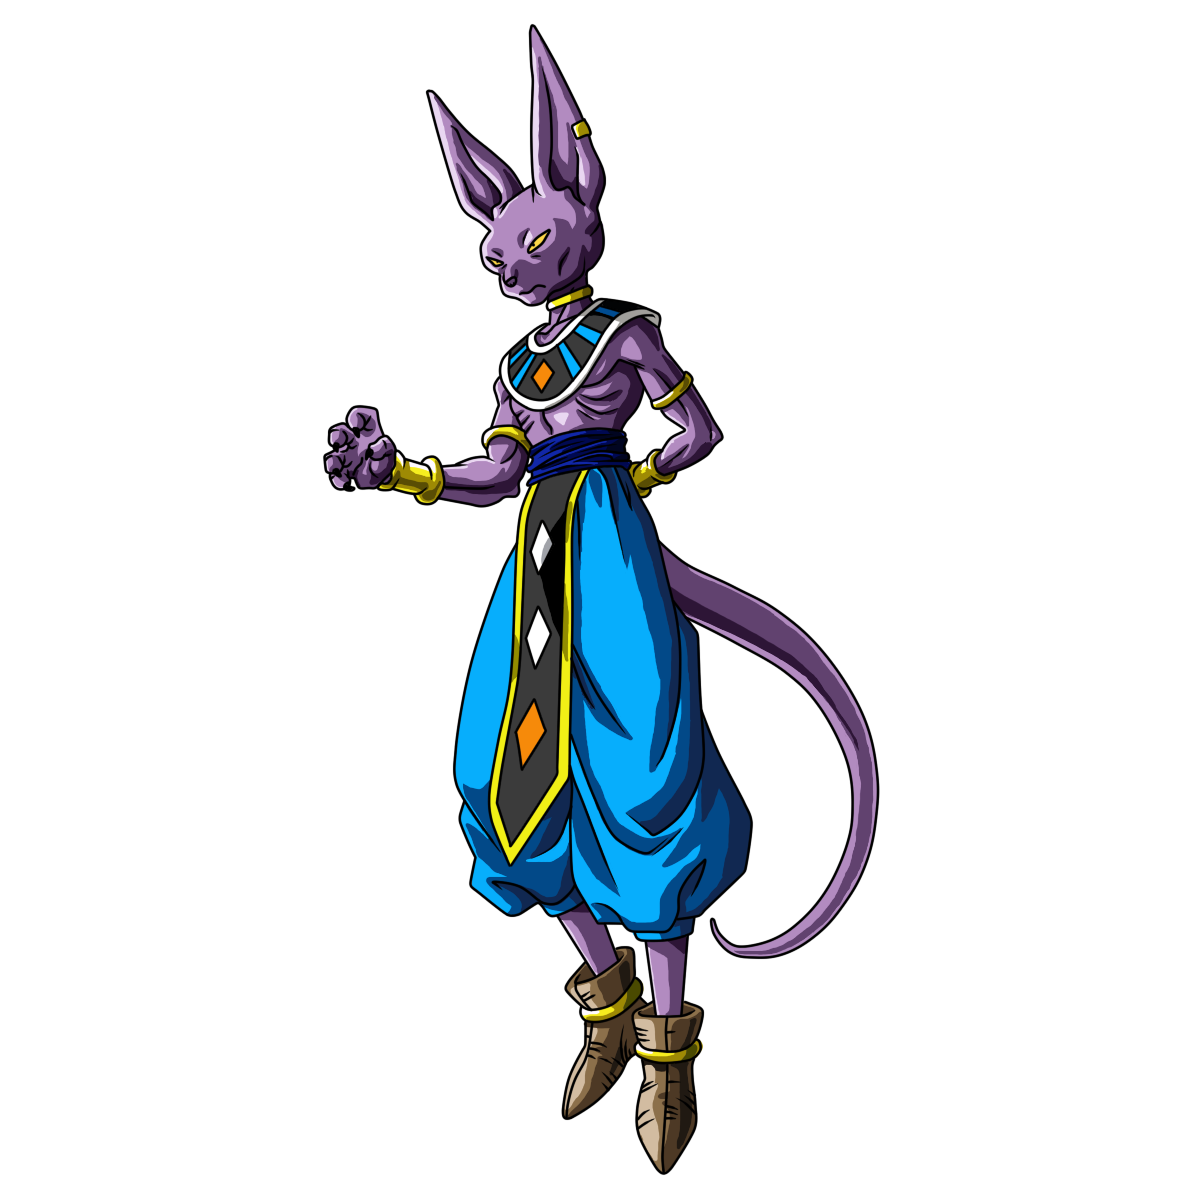 Beerus Vs. New 52 Superman  Beerus__revival_of_f__render_by_evil_black_sparx_77-d87i2l5